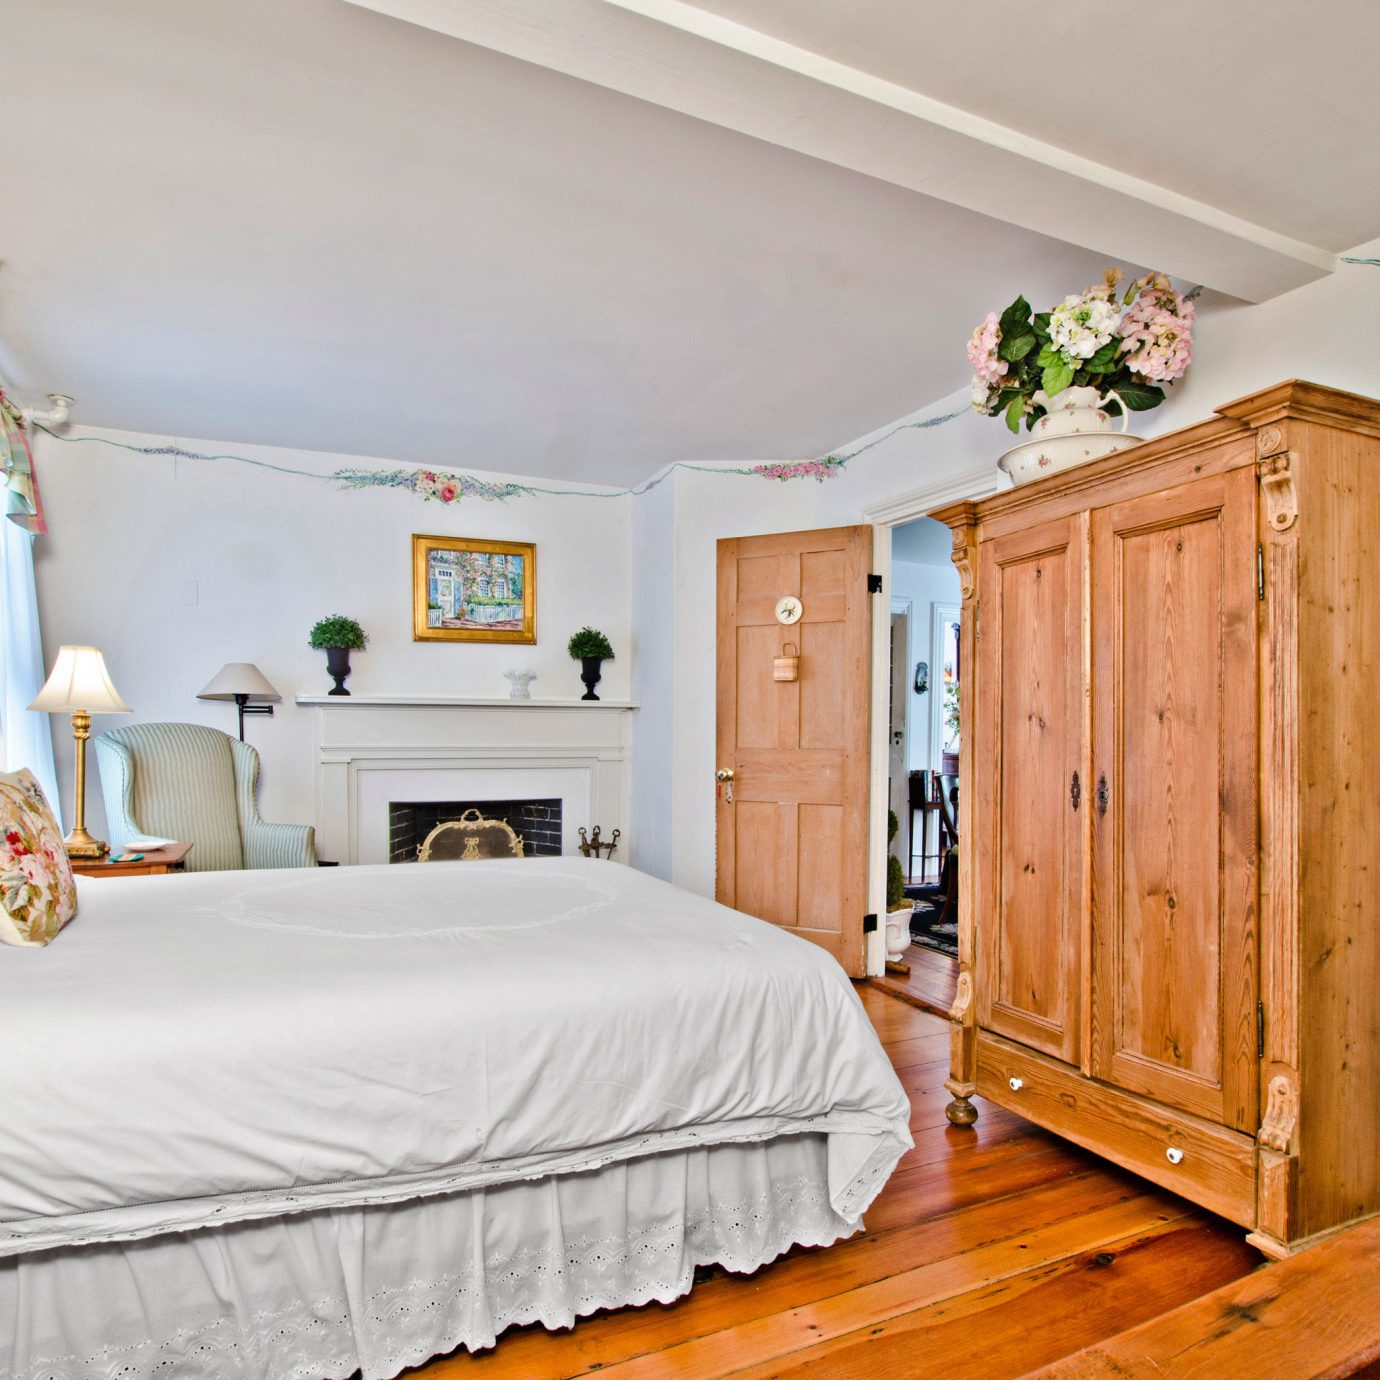 Bedroom Boutique Inn Waterfront property wooden home cottage living room Suite farmhouse